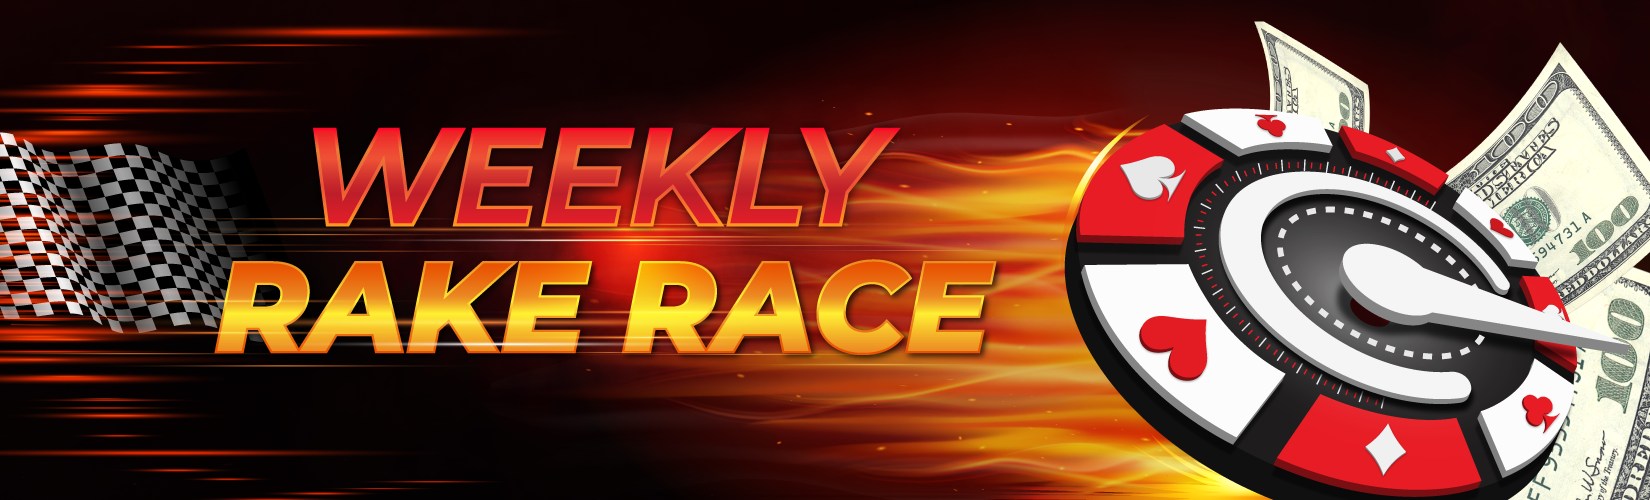 Poker Rake Race Weekly Cash